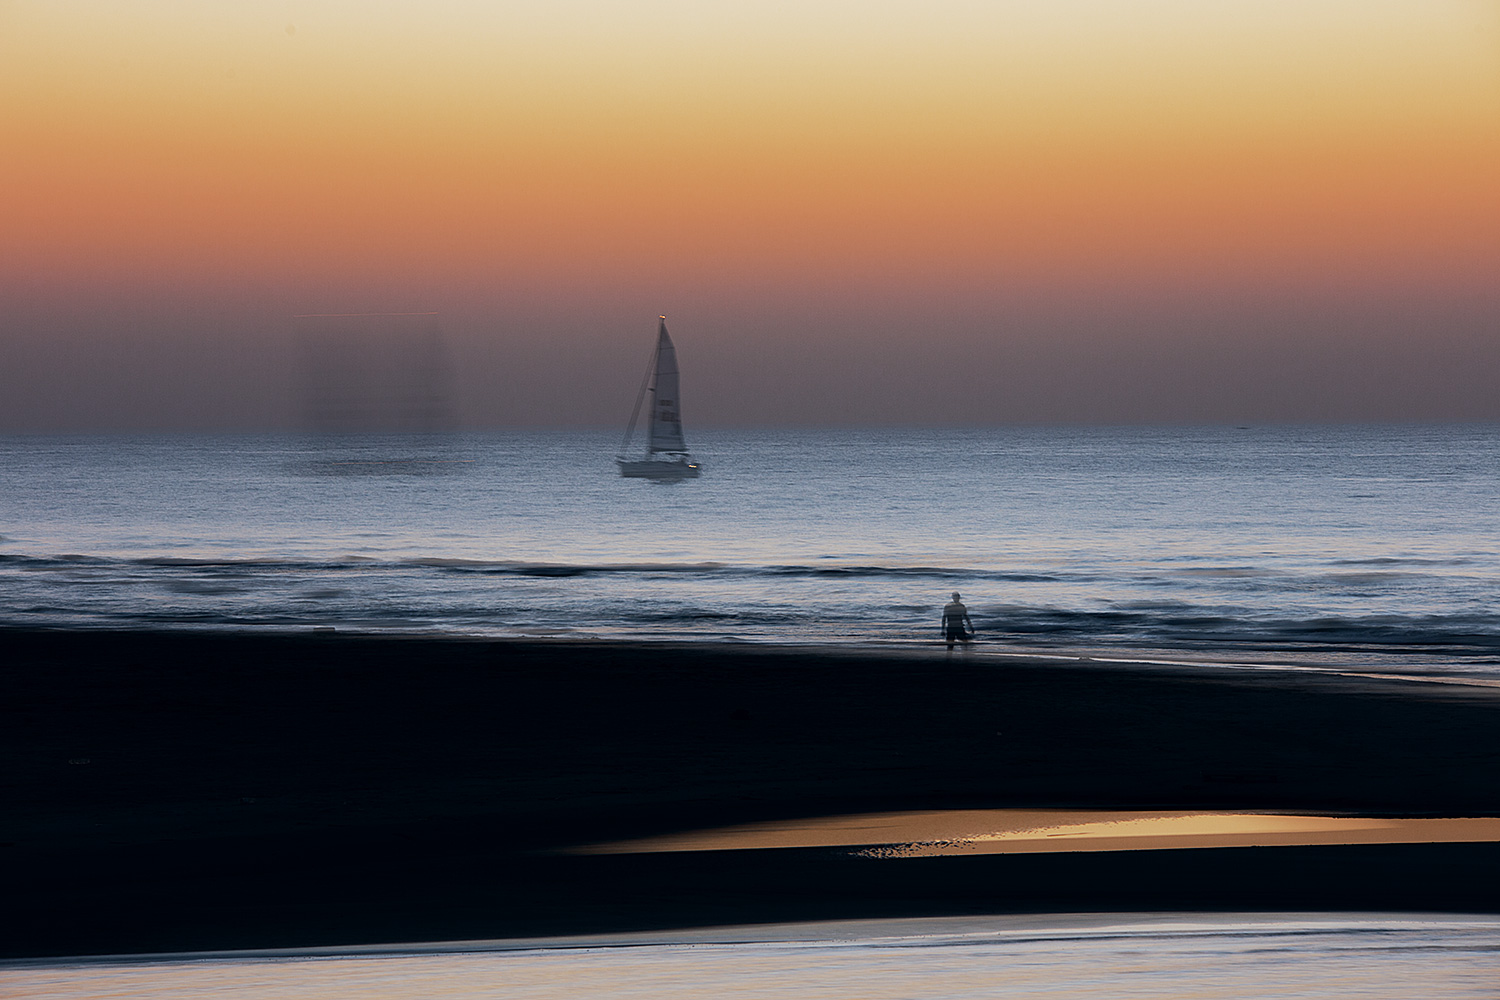 A Man and a Sailboat After Sunset